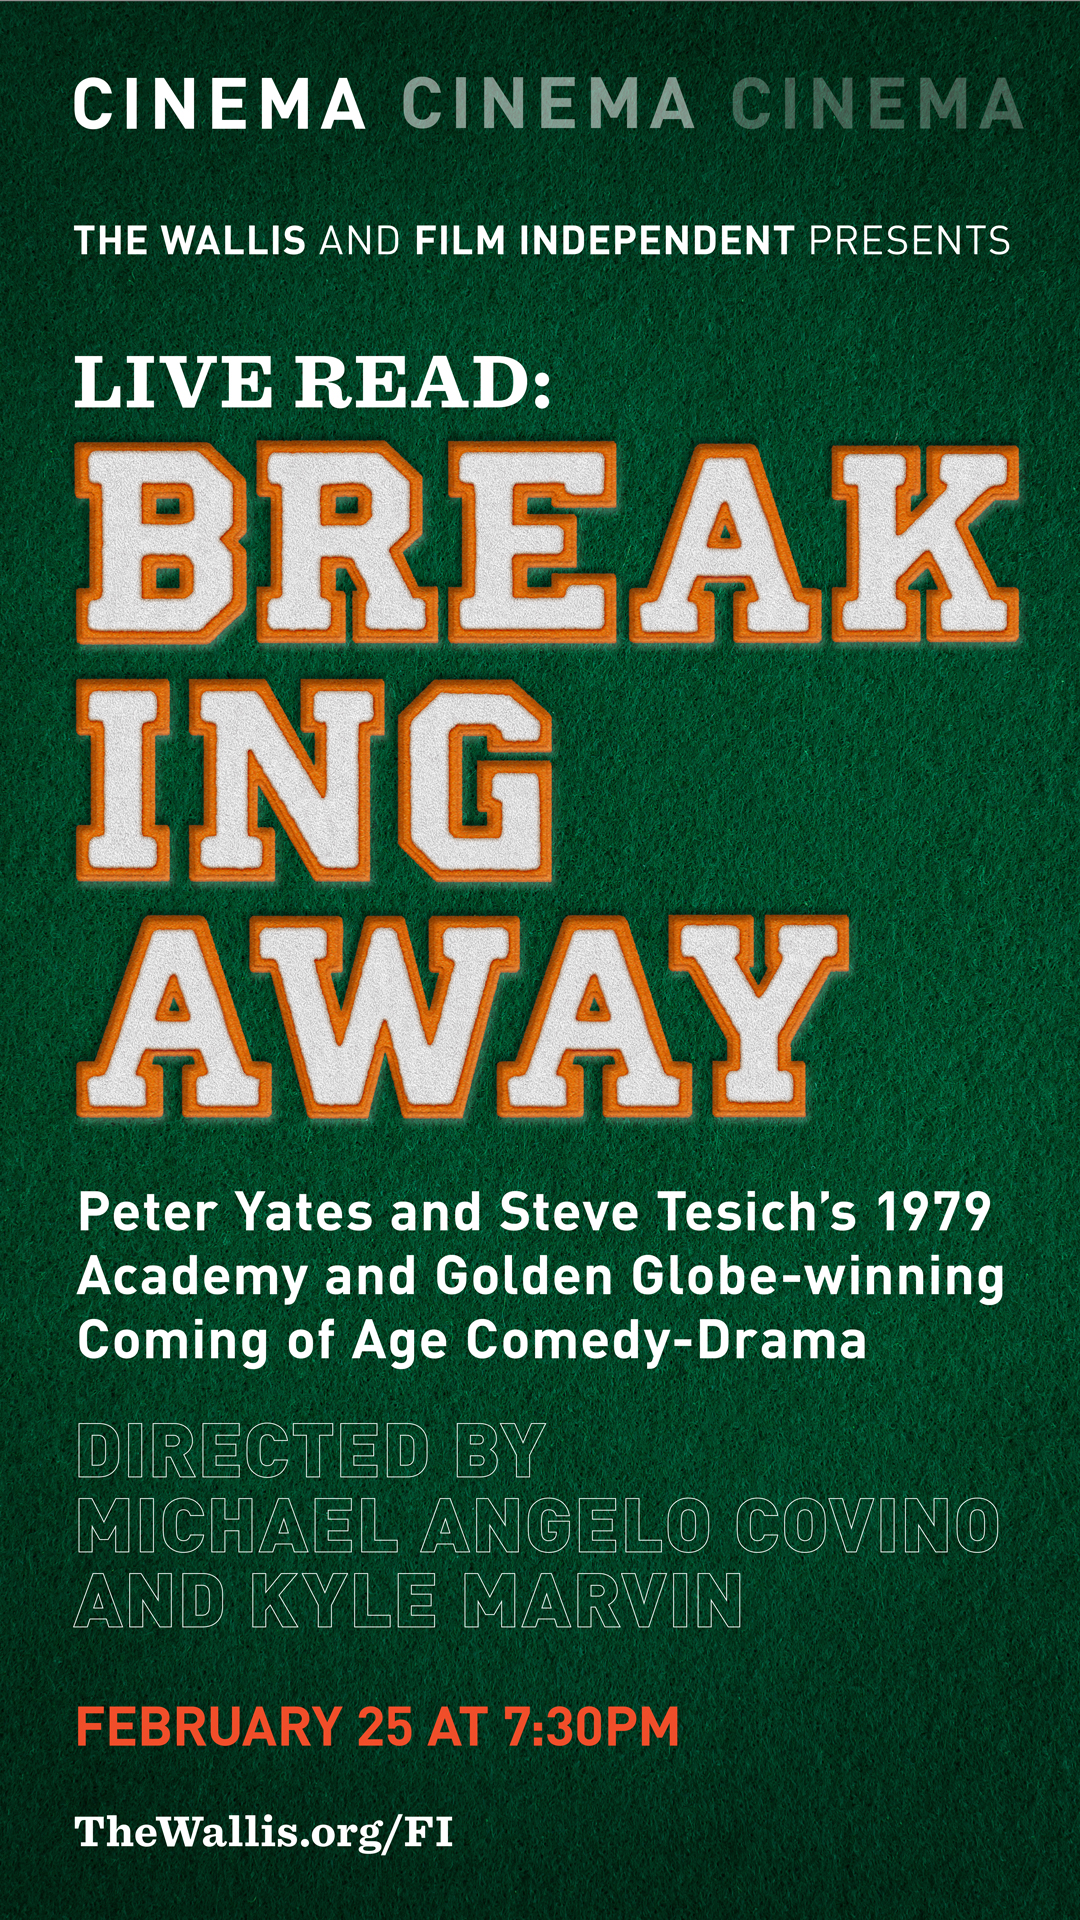 A Live Read of BREAKING AWAY